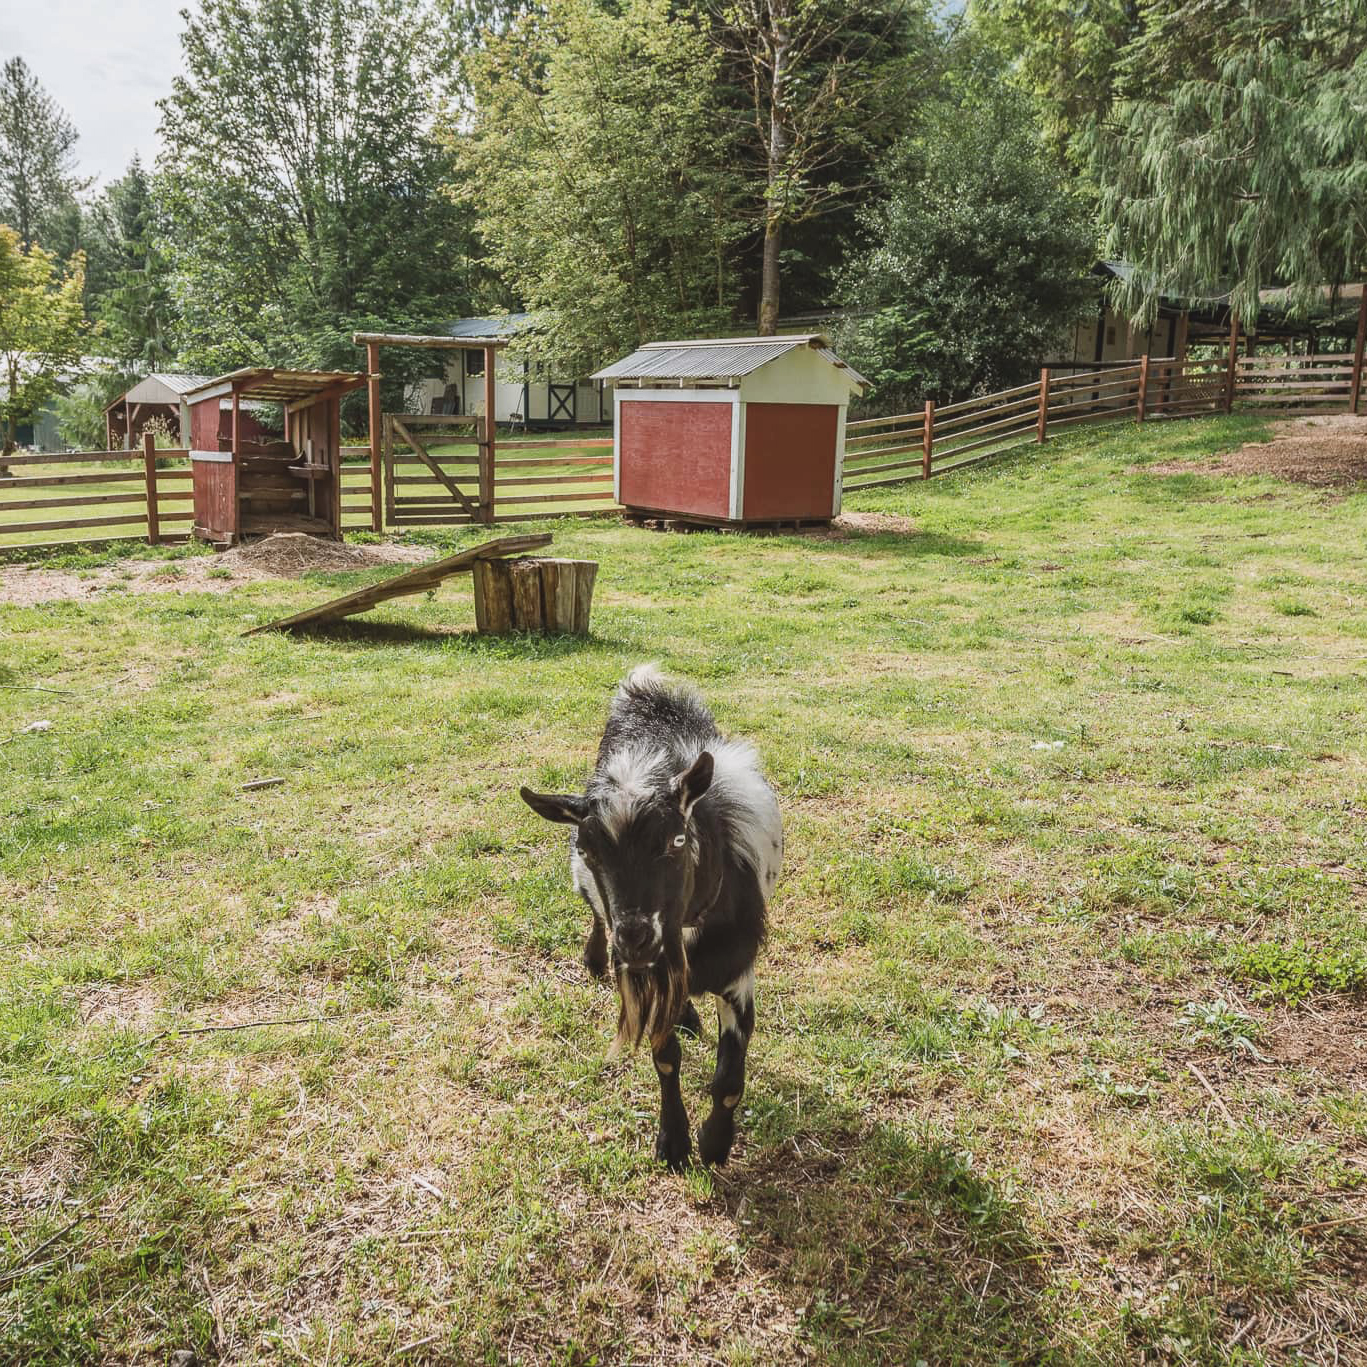 Emerald Valley Inn - Small Farm with Sparky the Goat